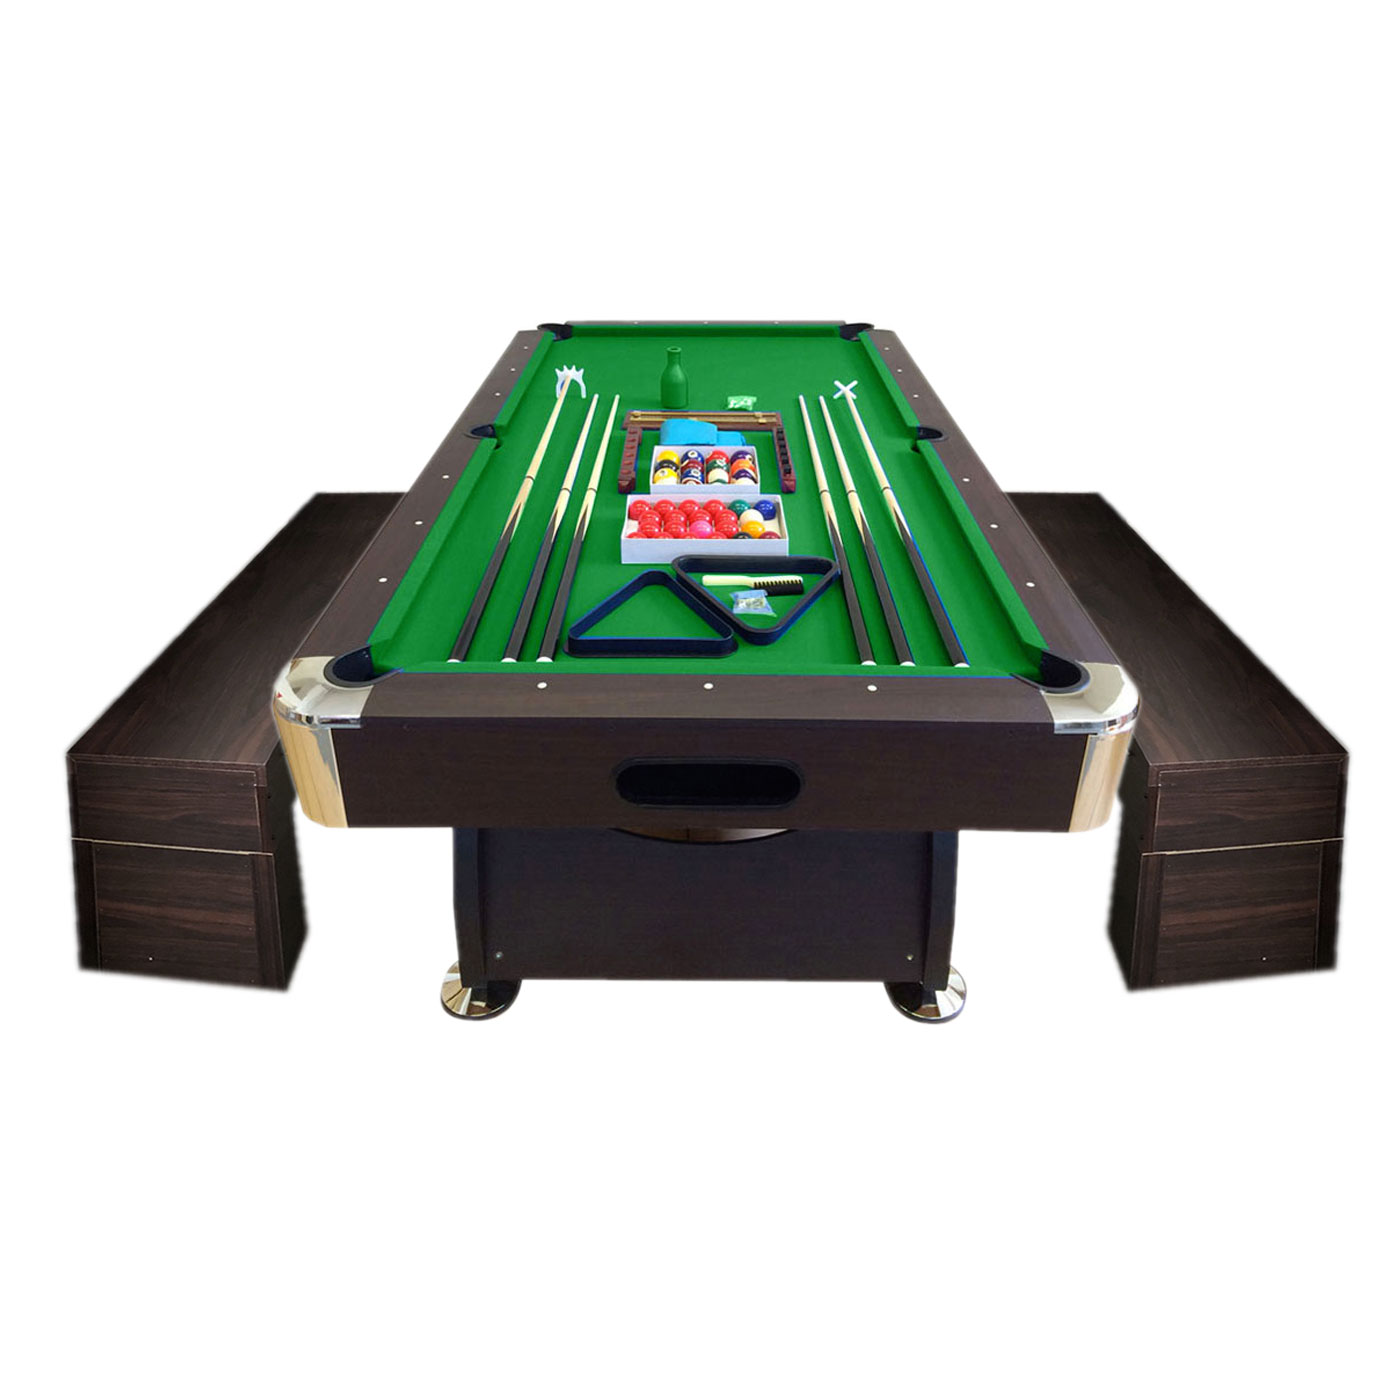 Terrific 8 Ft Pool Table Billiard With Container Benches Vintage Green Pdpeps Interior Chair Design Pdpepsorg